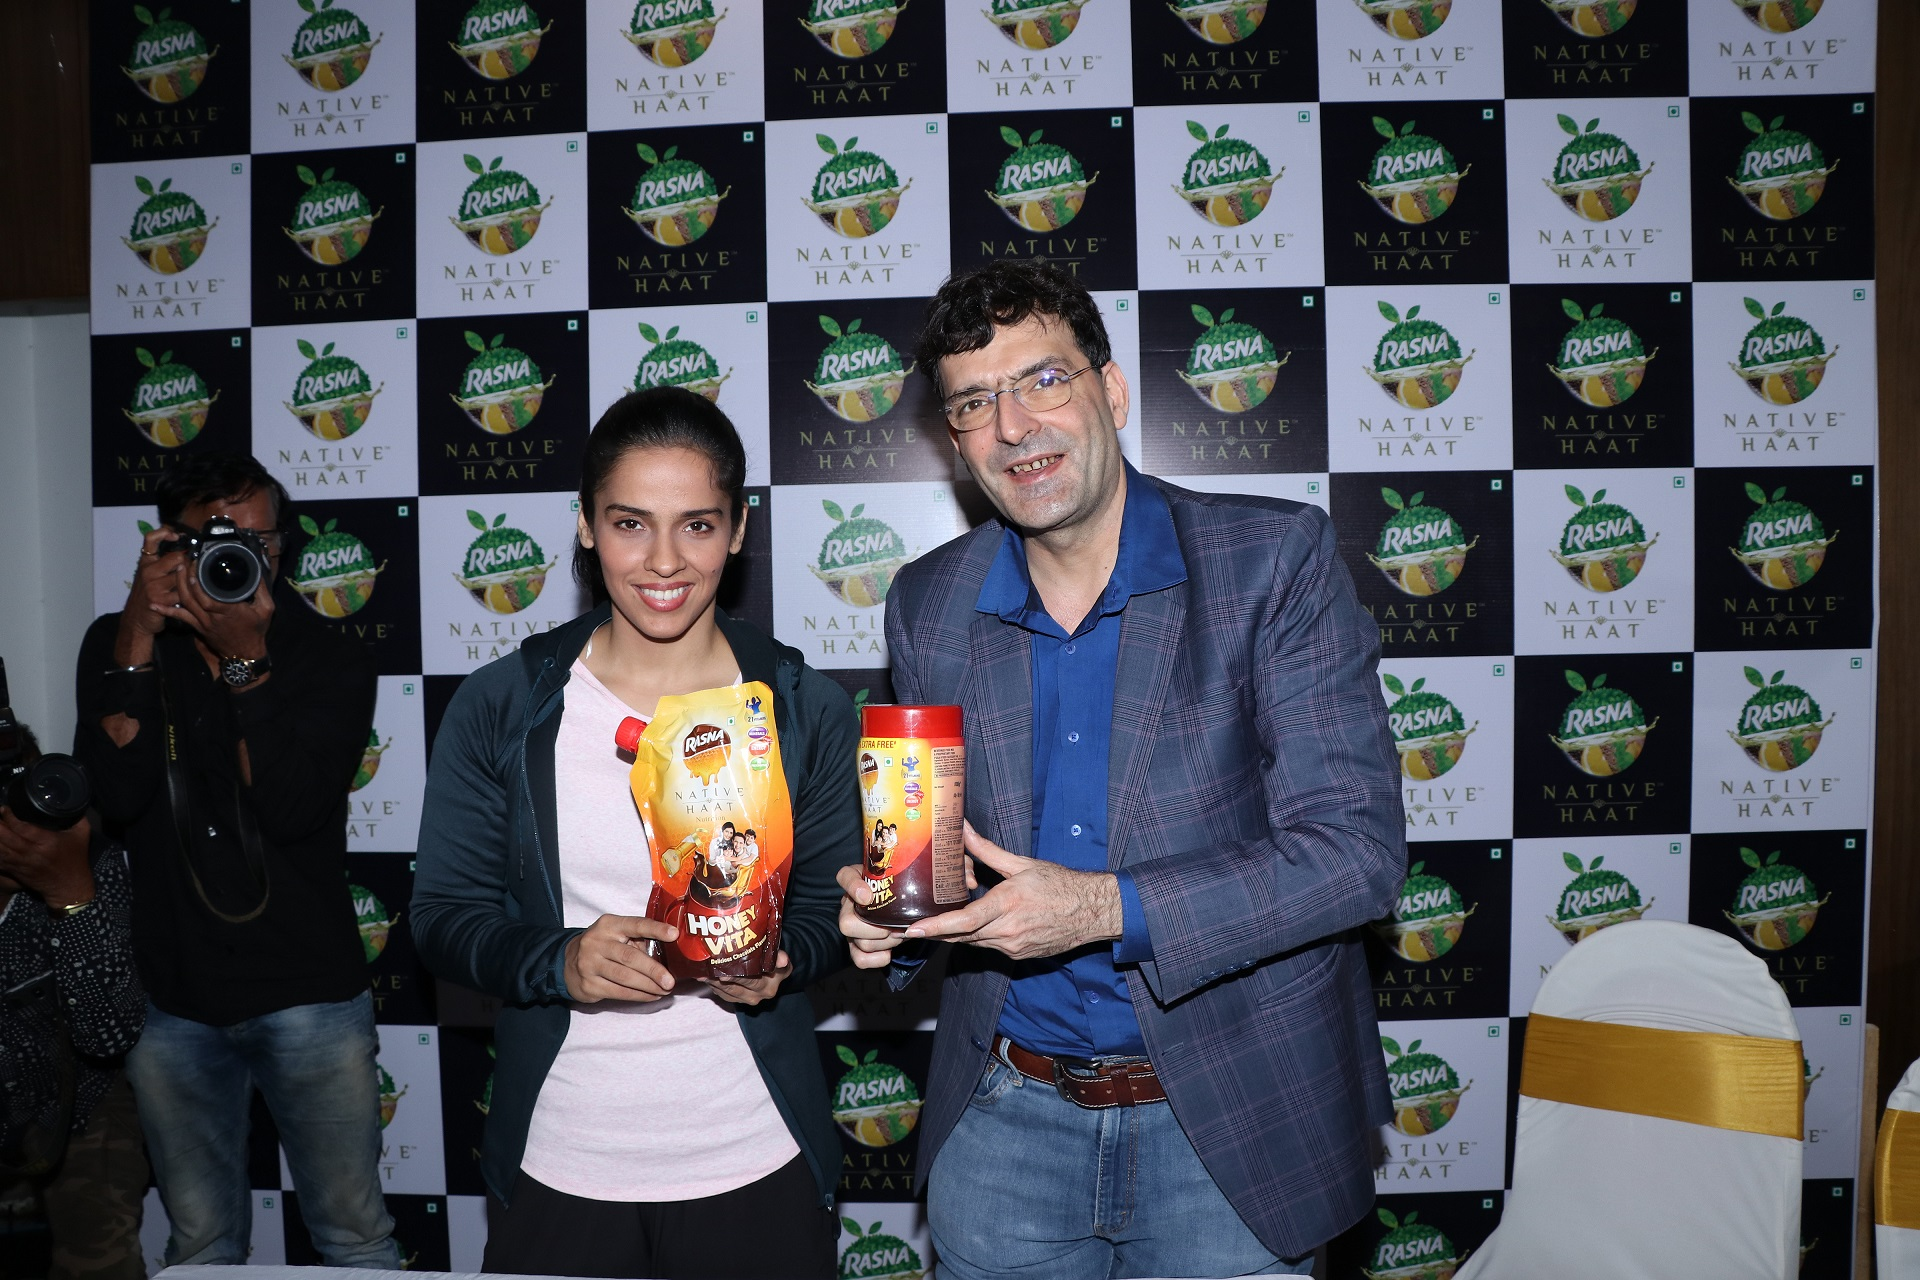 Saina Nehwala with Mr.Piruz Khambatta, Chairman - Rasna Pvt.Ltd at Rasna Native Haat range launch